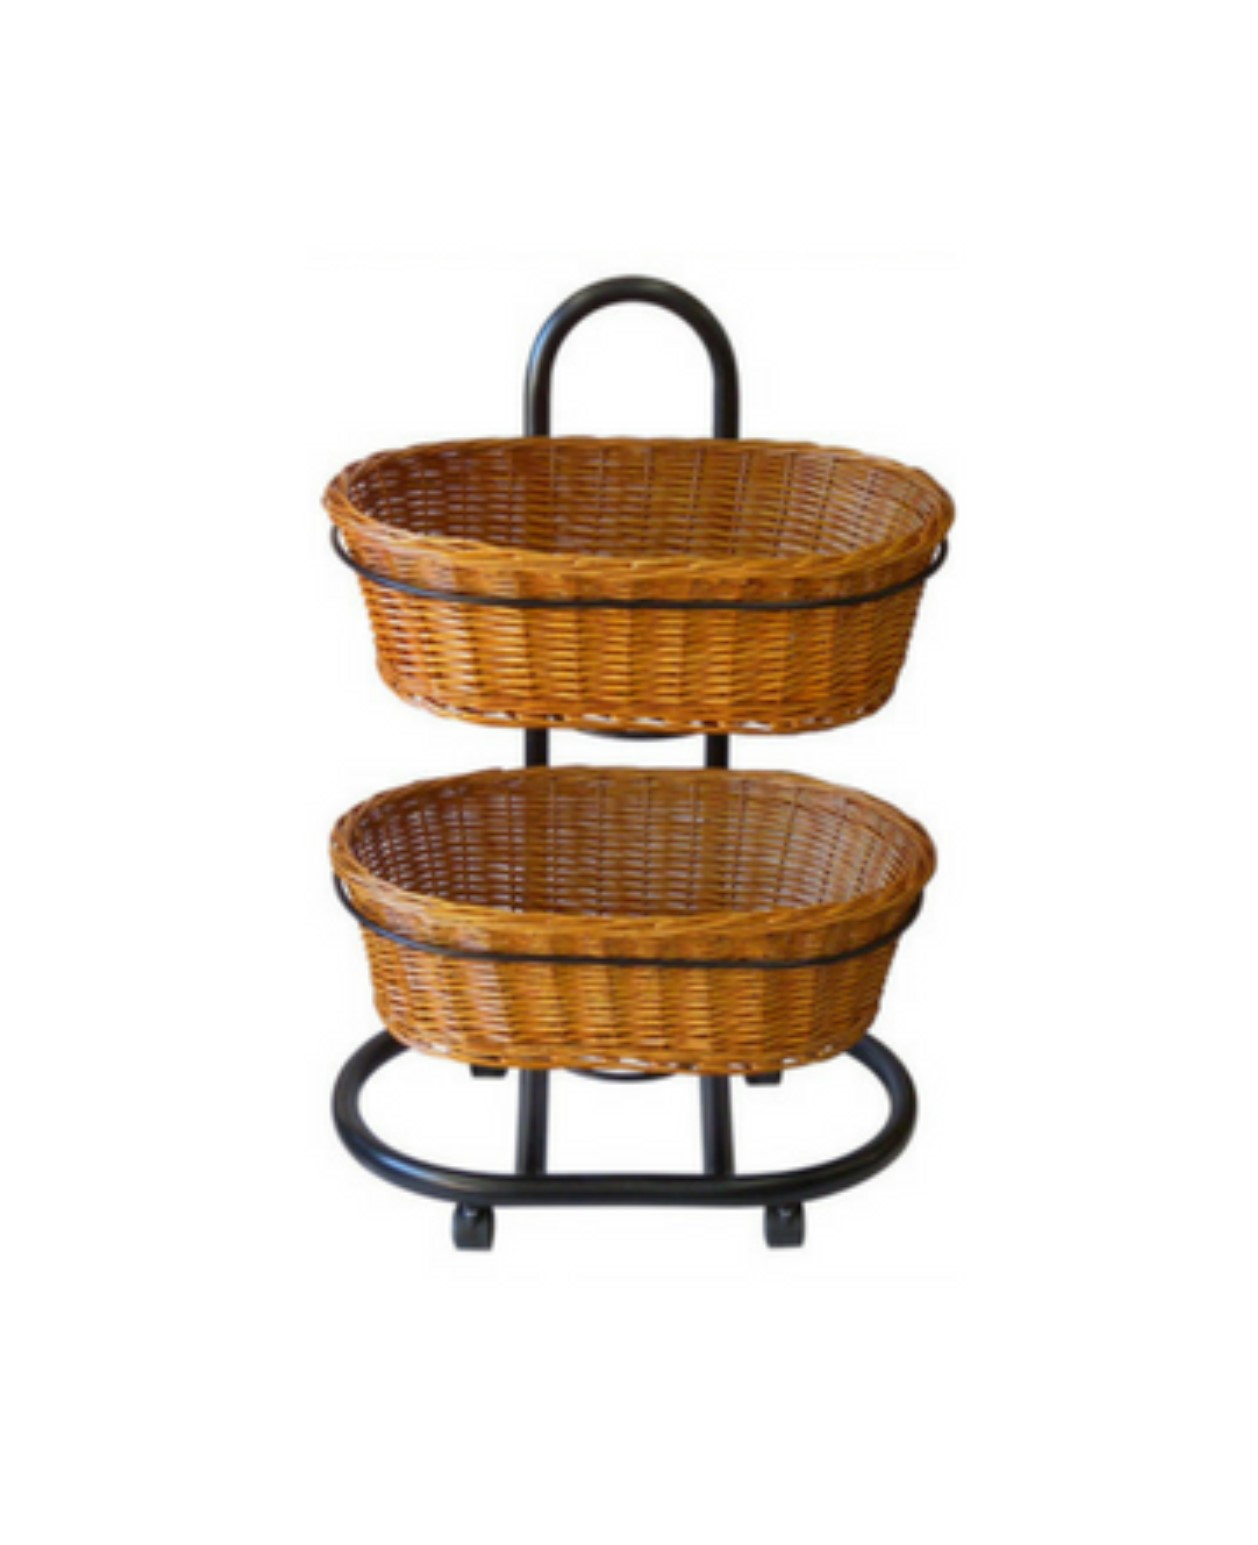 Polywicker Oval Baskets Double Stand